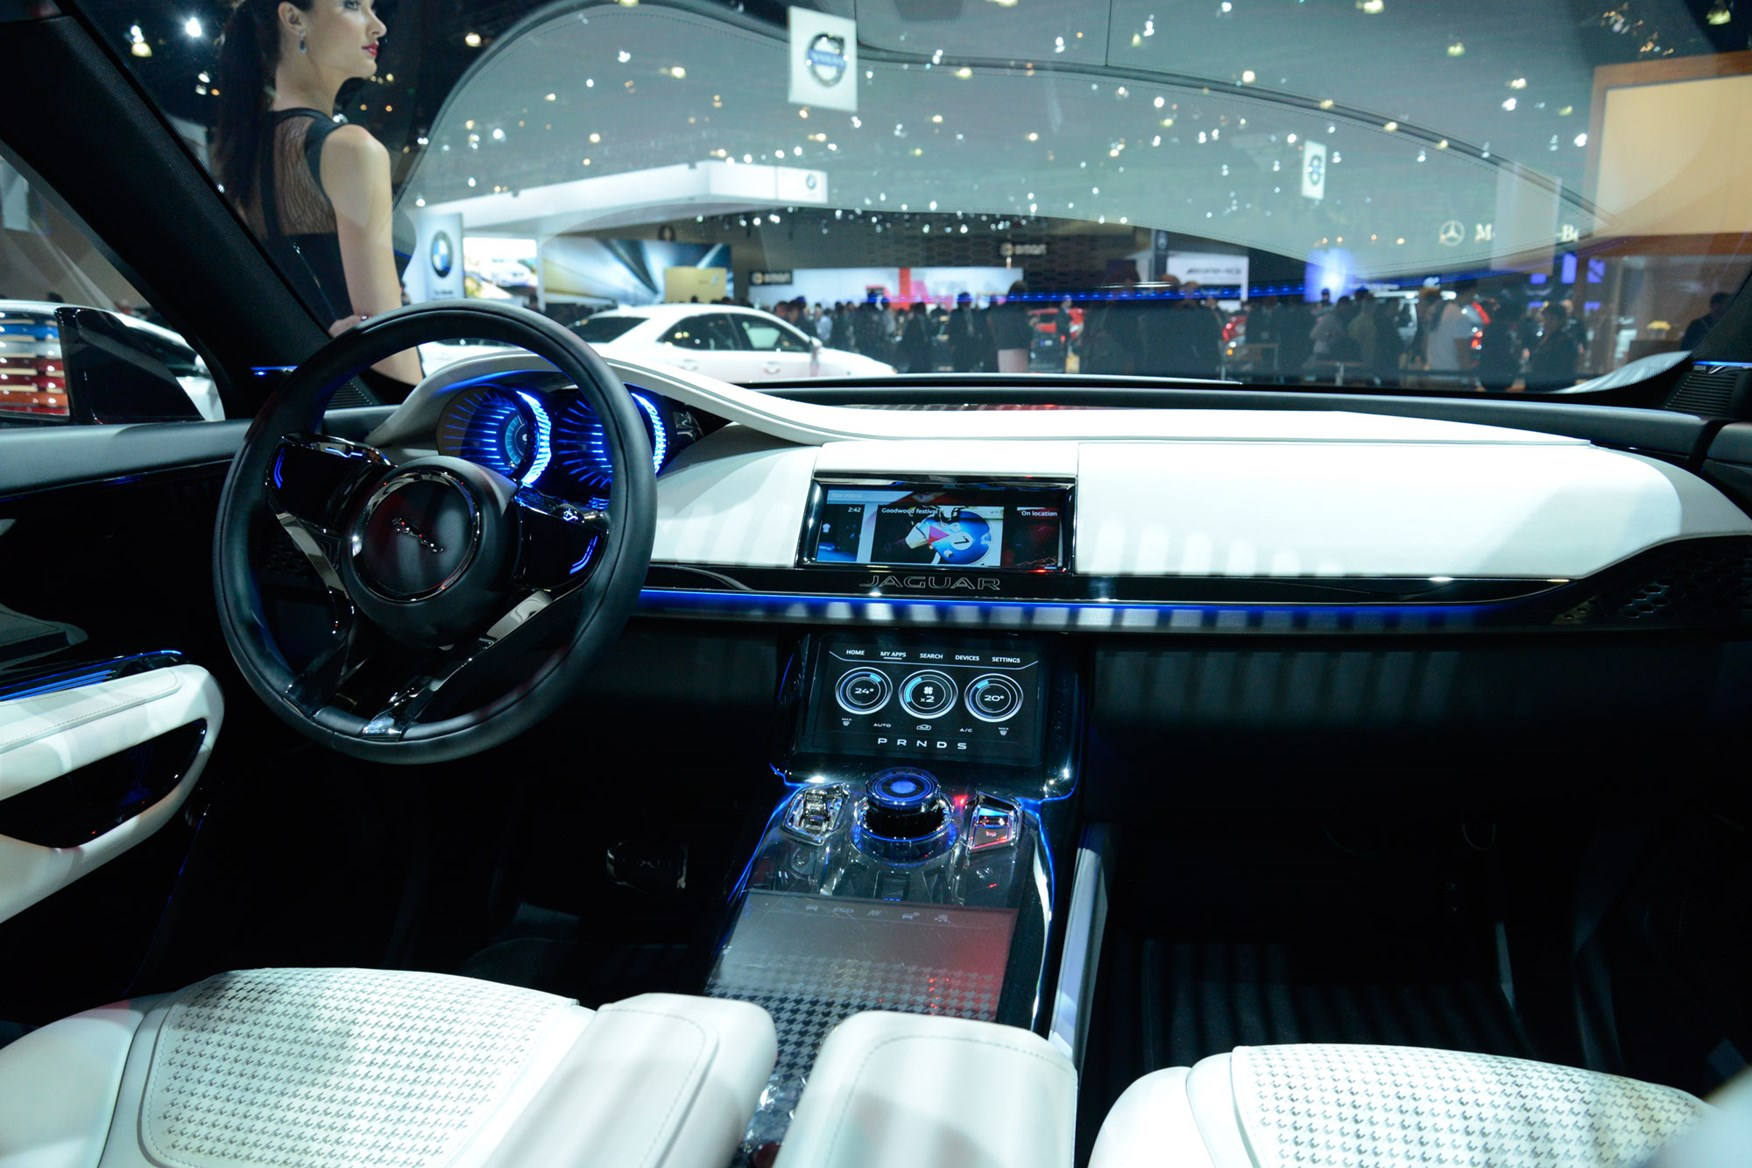 ... Concept Interior Far More Dramatic, But Two Dial Instrument Layout Has  Been Retained. Probably Without The Striking Lighting Decoration, Though  Jaguar ...